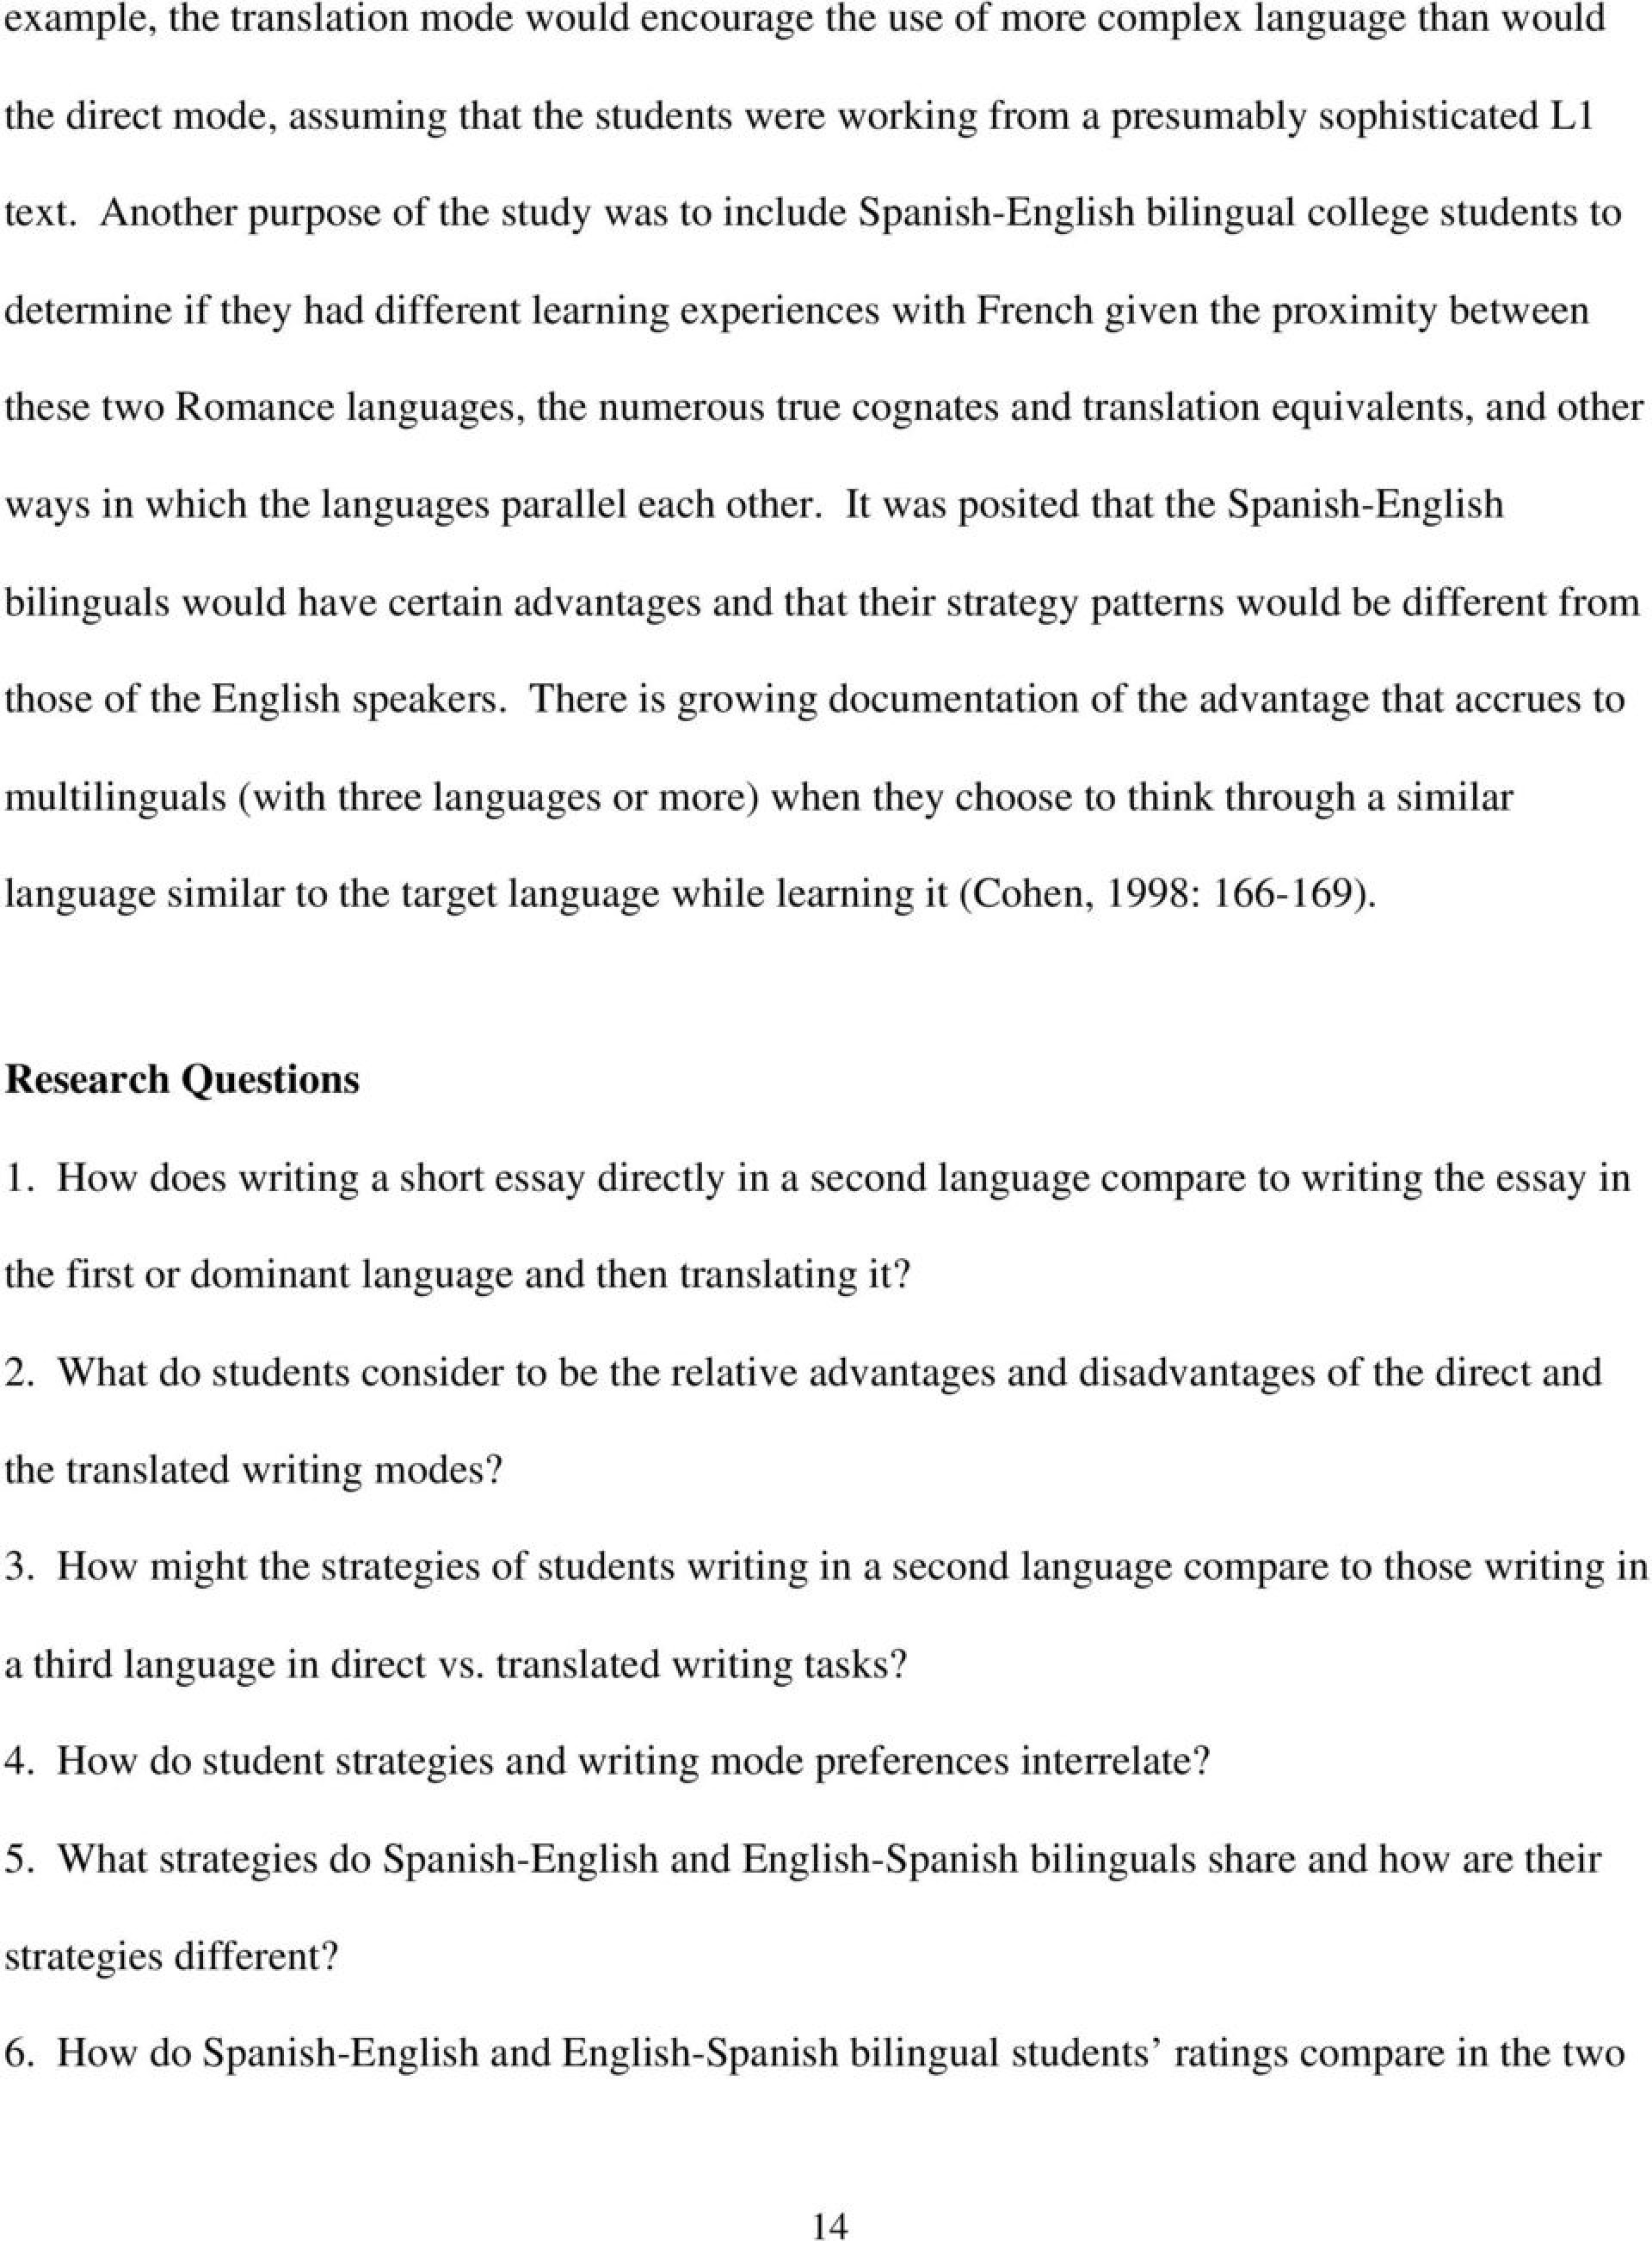 003 Translate Essay To Spanish Writing An In Direct Vs Translated What How Write About Yourself Pa Teaching Google Your My Tips Essays Phrases Staggering Into Does Mean 1920